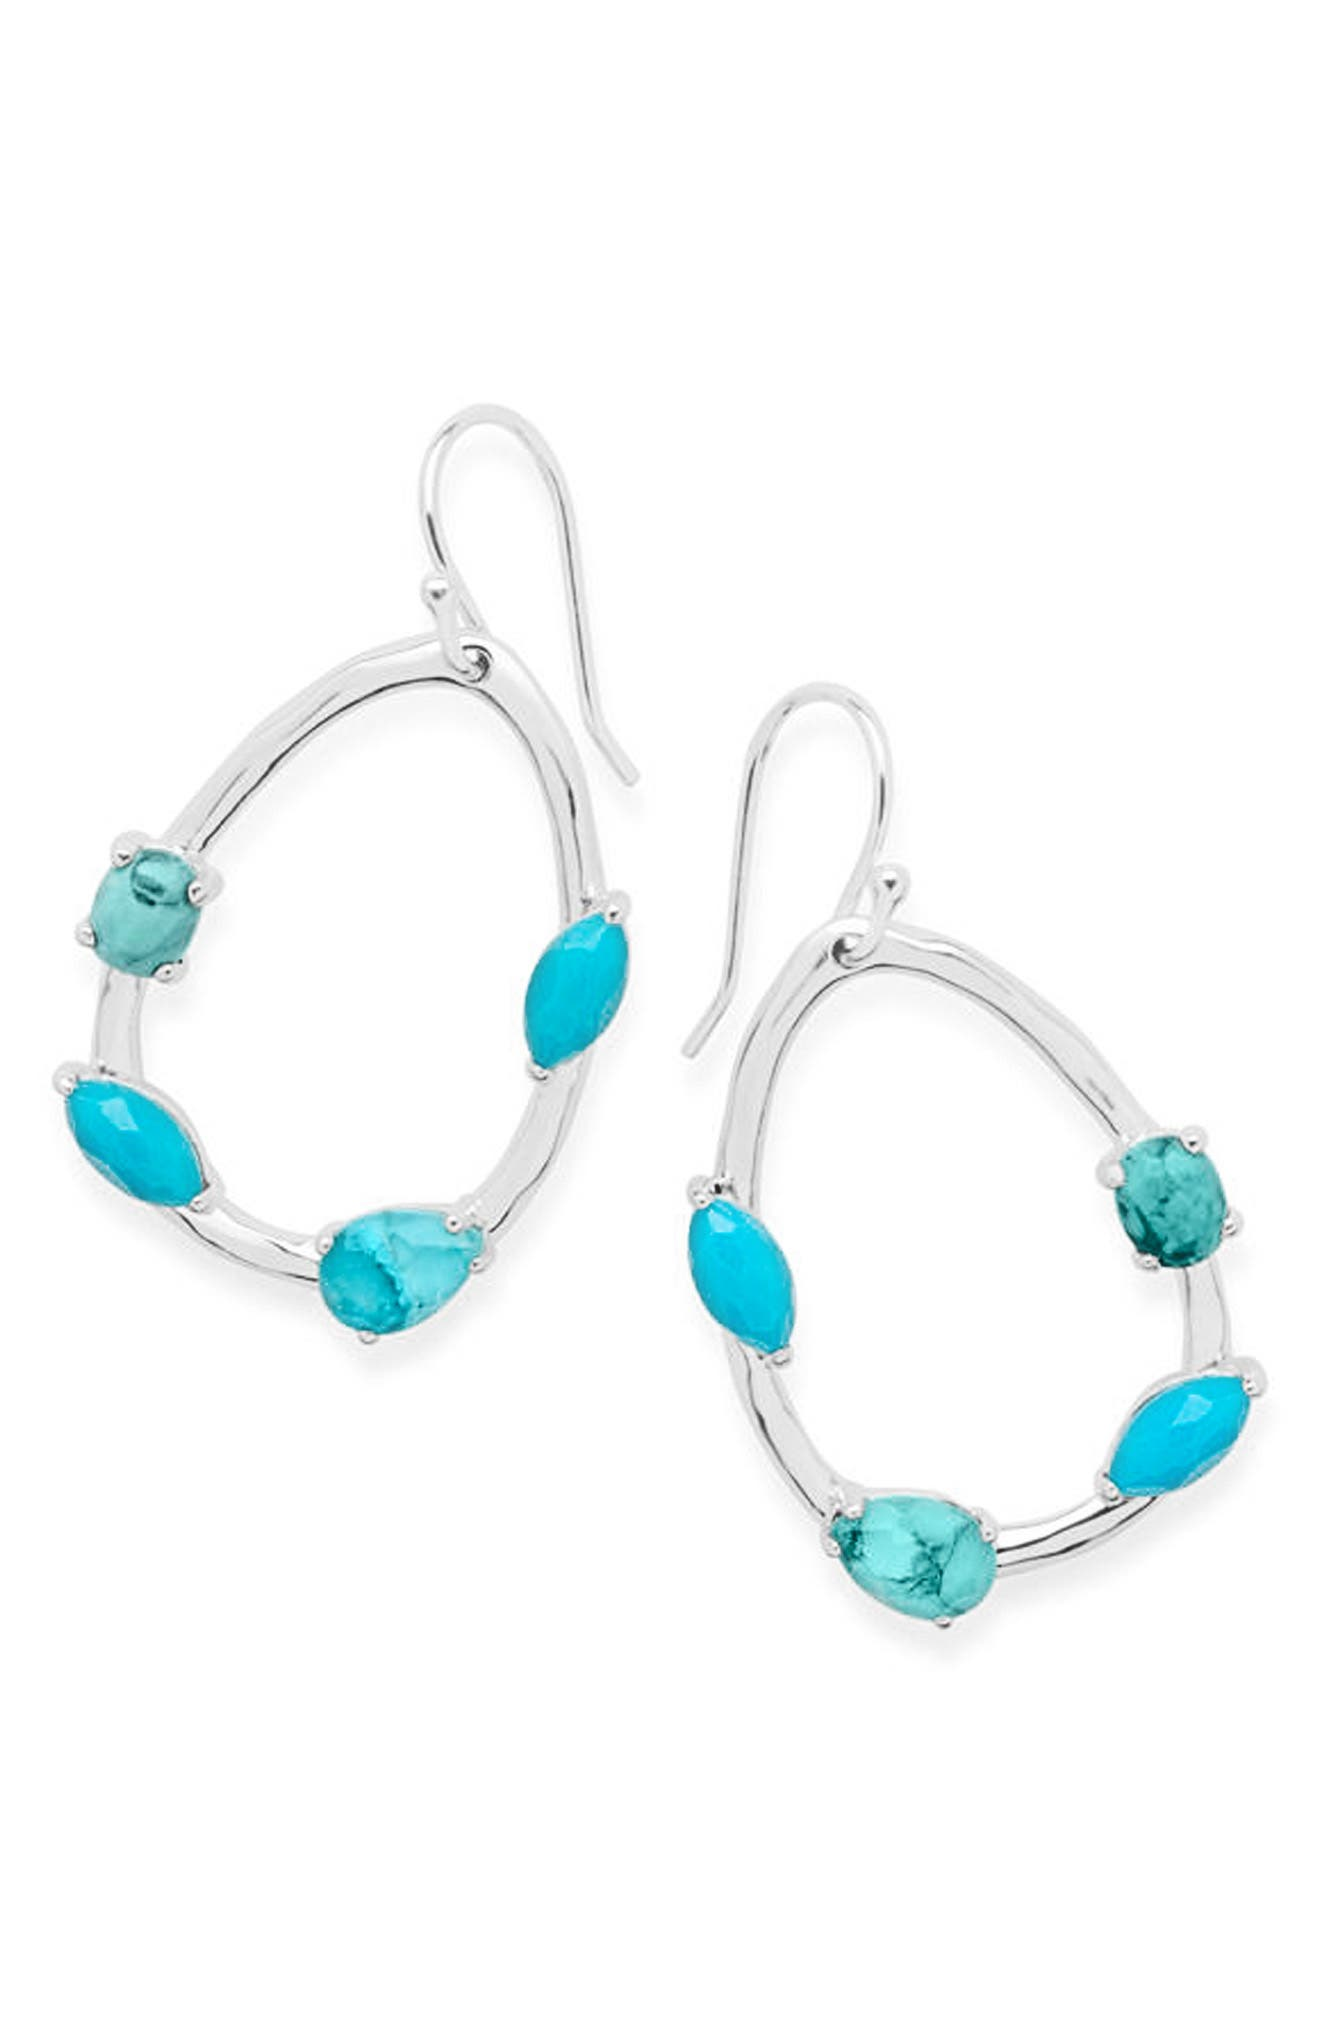 Rock Candy Small Drop Earrings,                             Main thumbnail 1, color,                             TURQUOISE